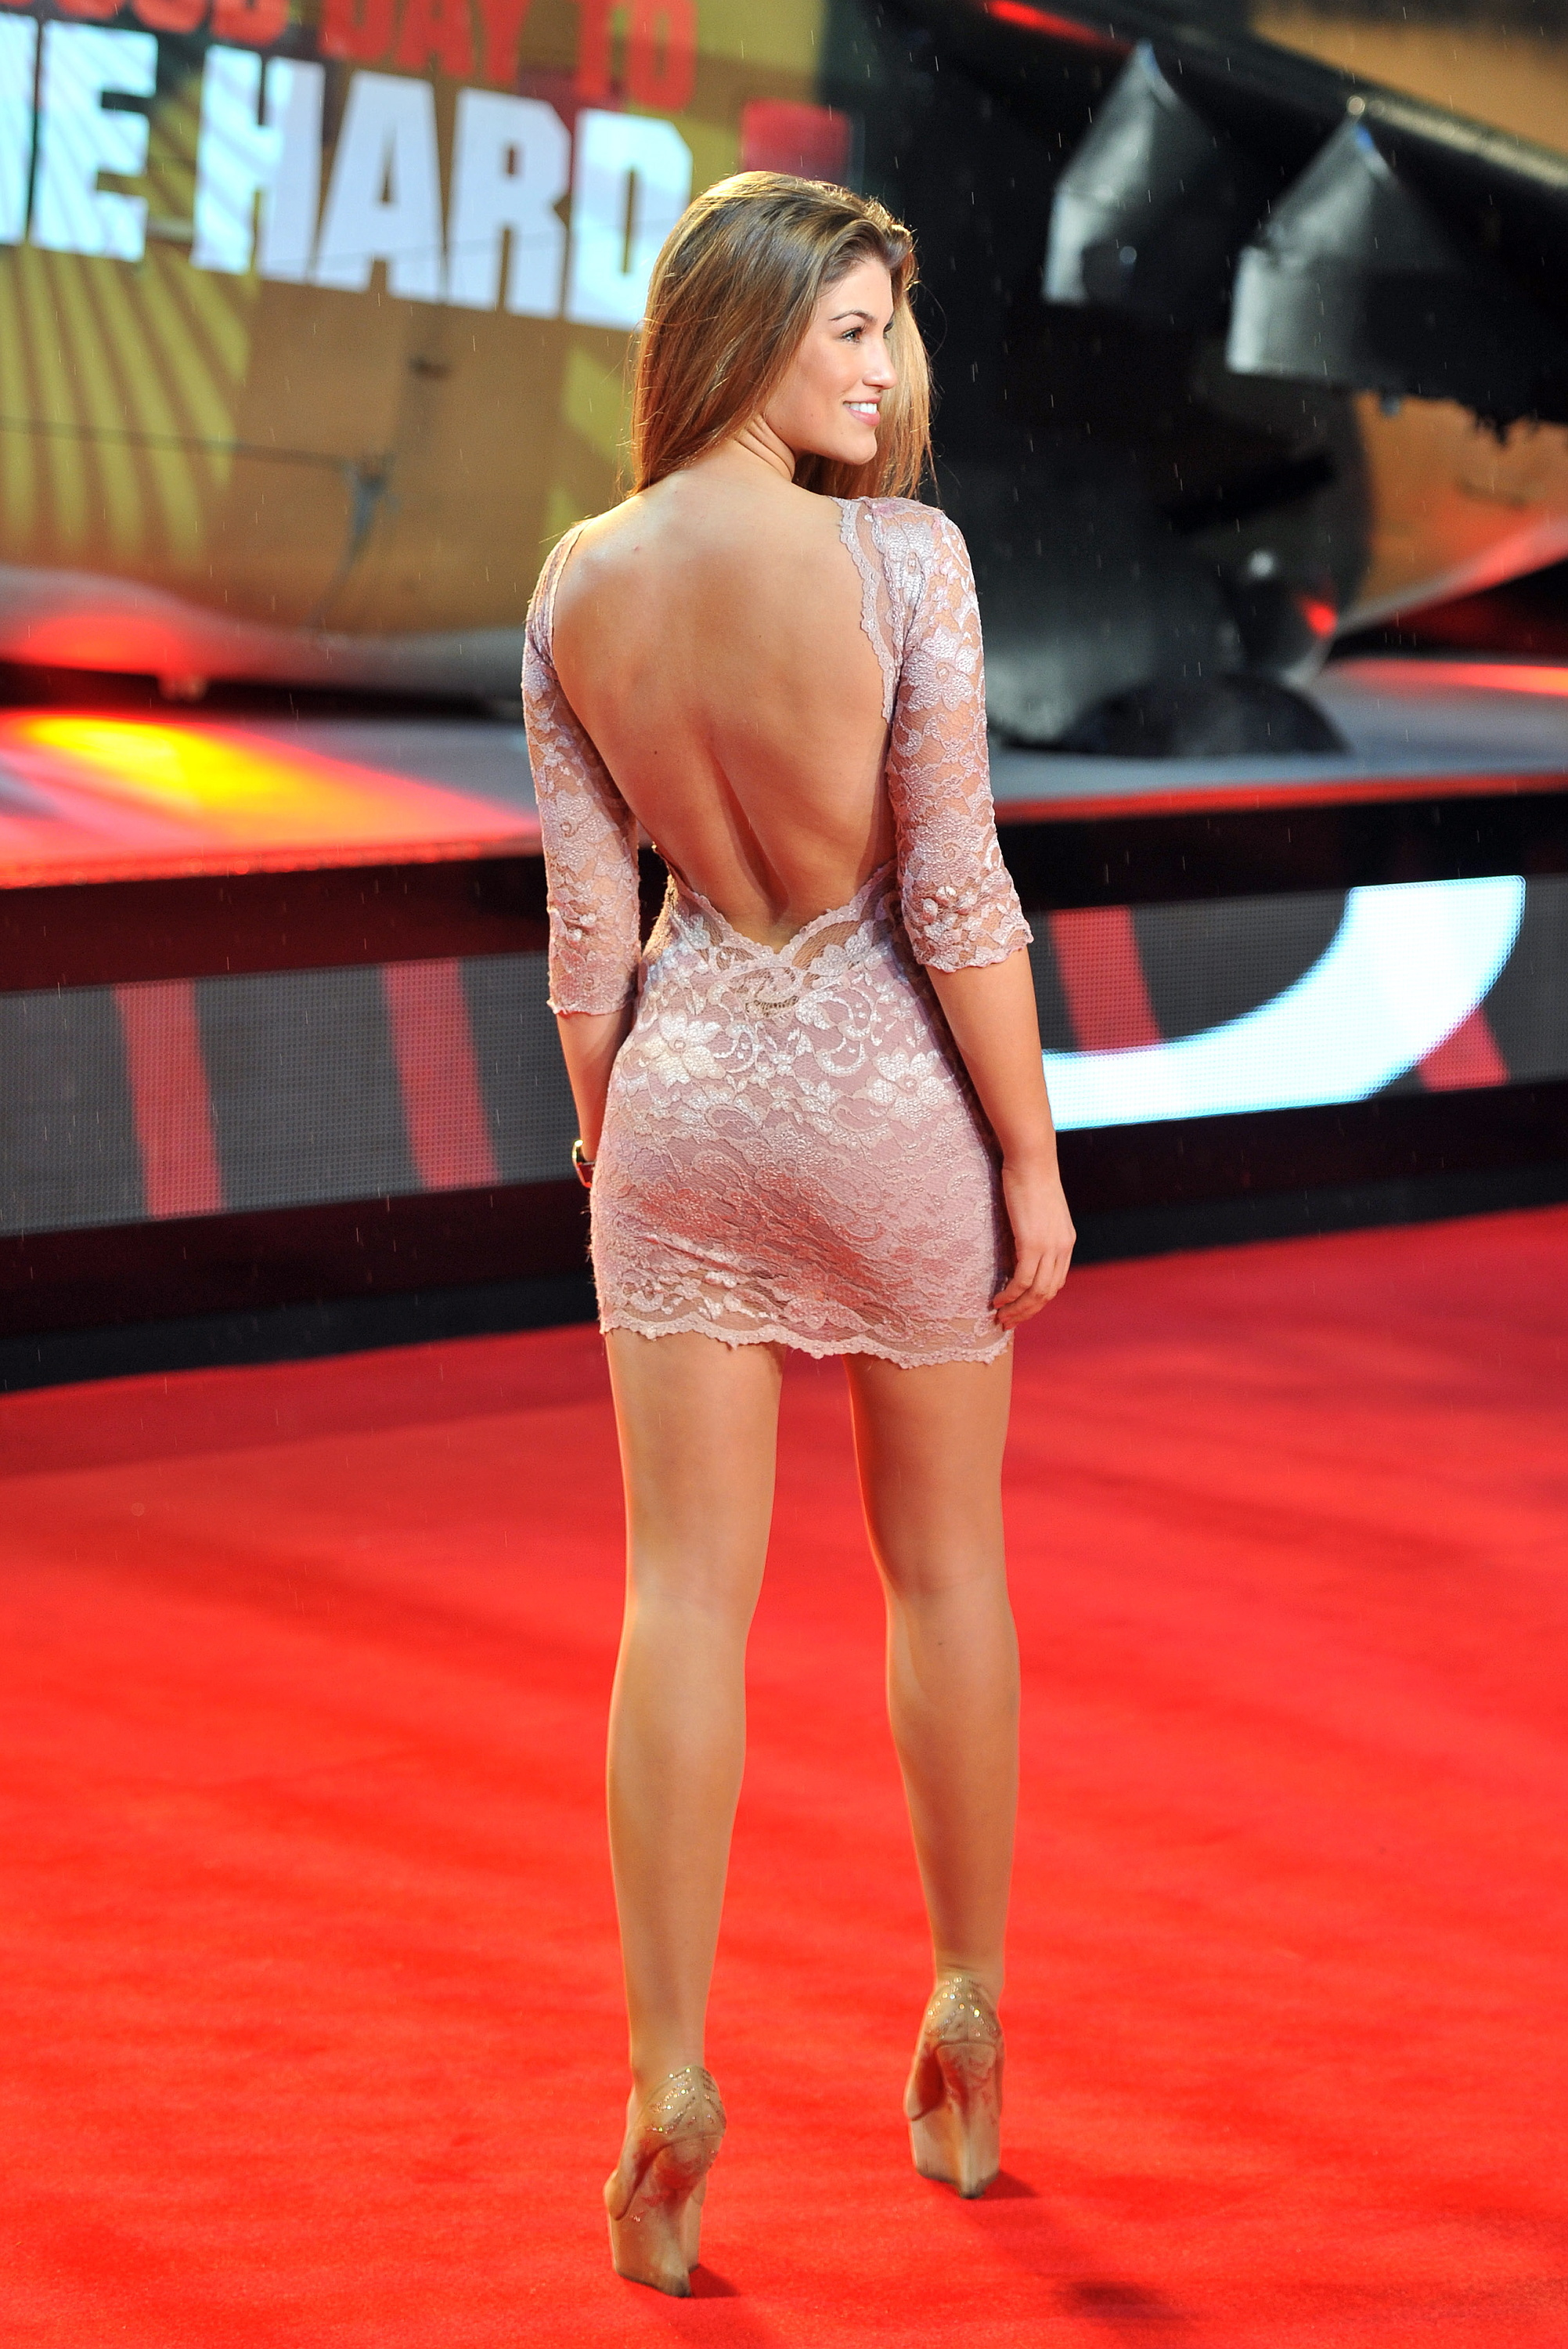 Amy Willerton legs | Naked body parts of celebrities